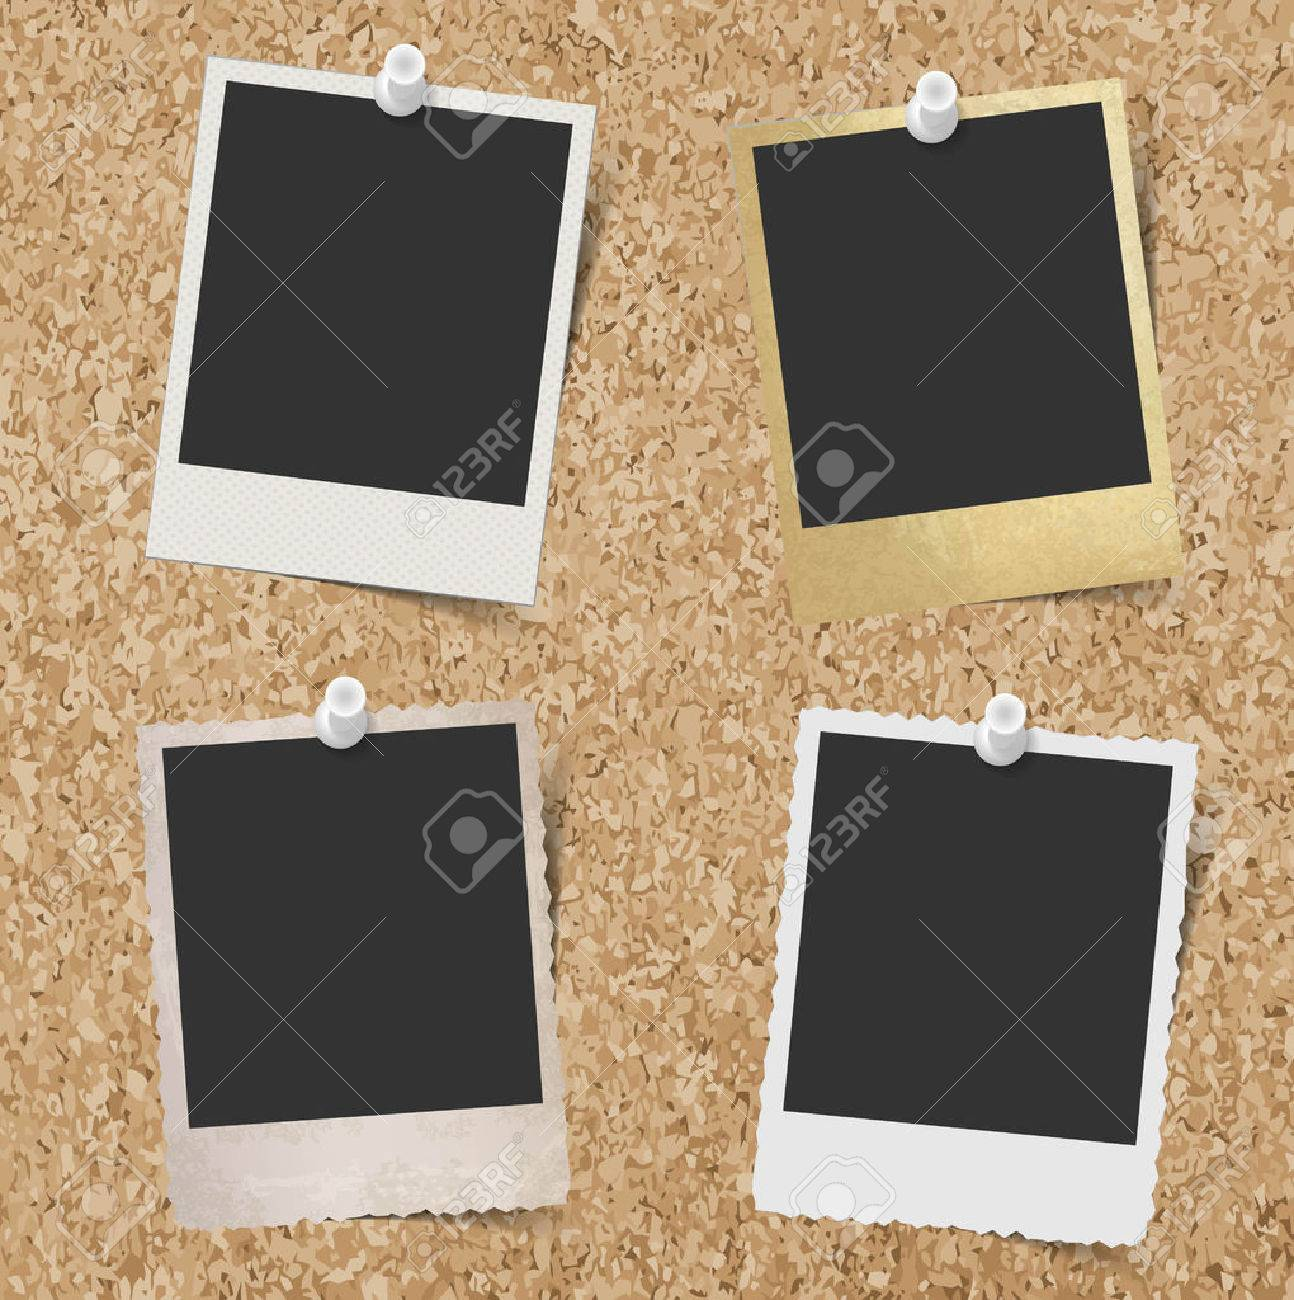 Blank instant photo frames pinned to cork board background - 46693039